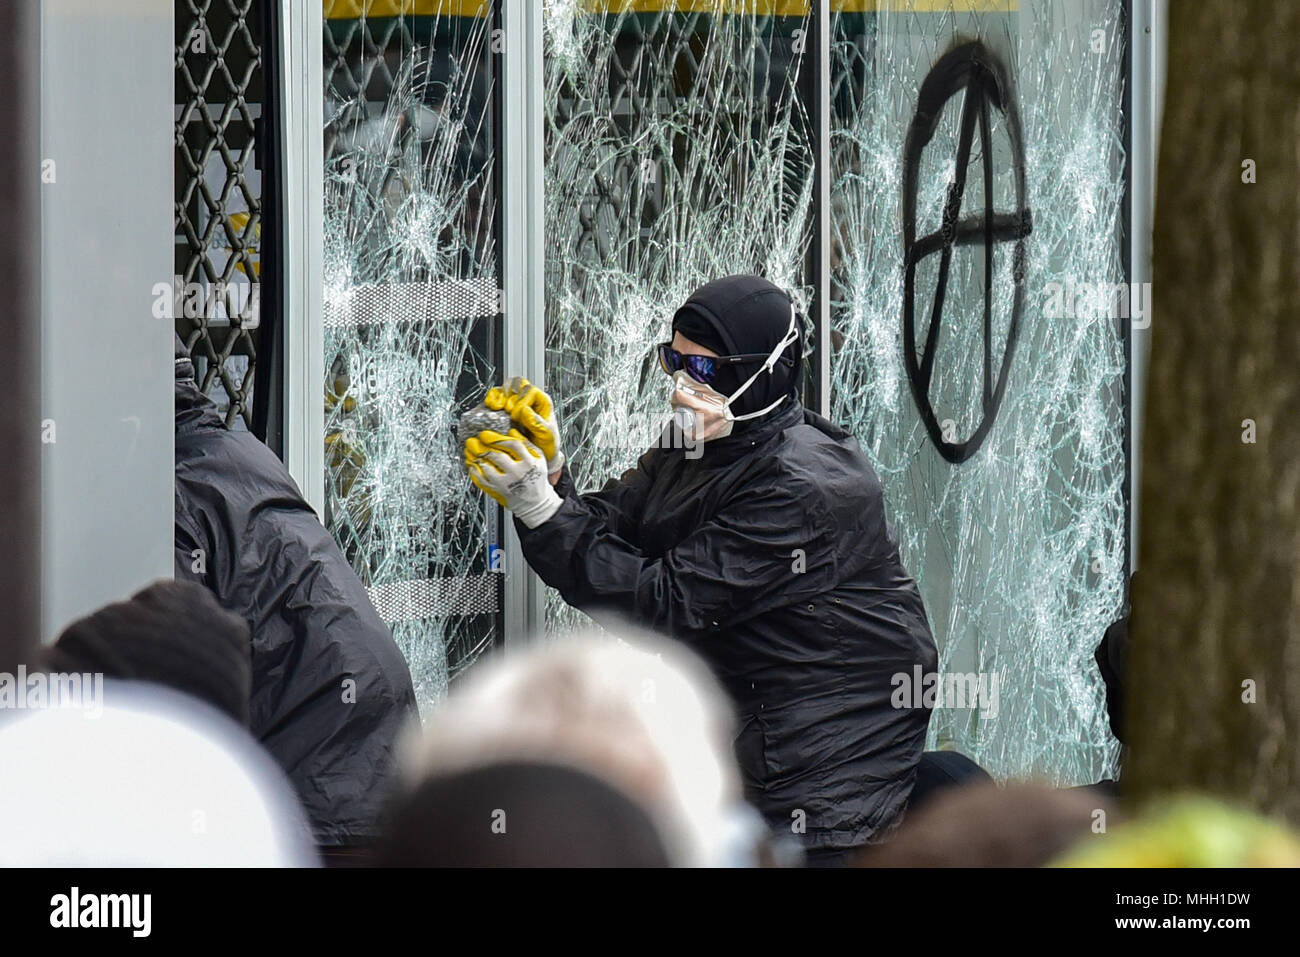 Paris, France. 1st May 2018. Paris police clash with protesters as demonstrations turn violent. PICTURED: A 'Black Bloc' protester smashes a shop window. Credit: Peter Manning/Alamy Live News - Stock Image